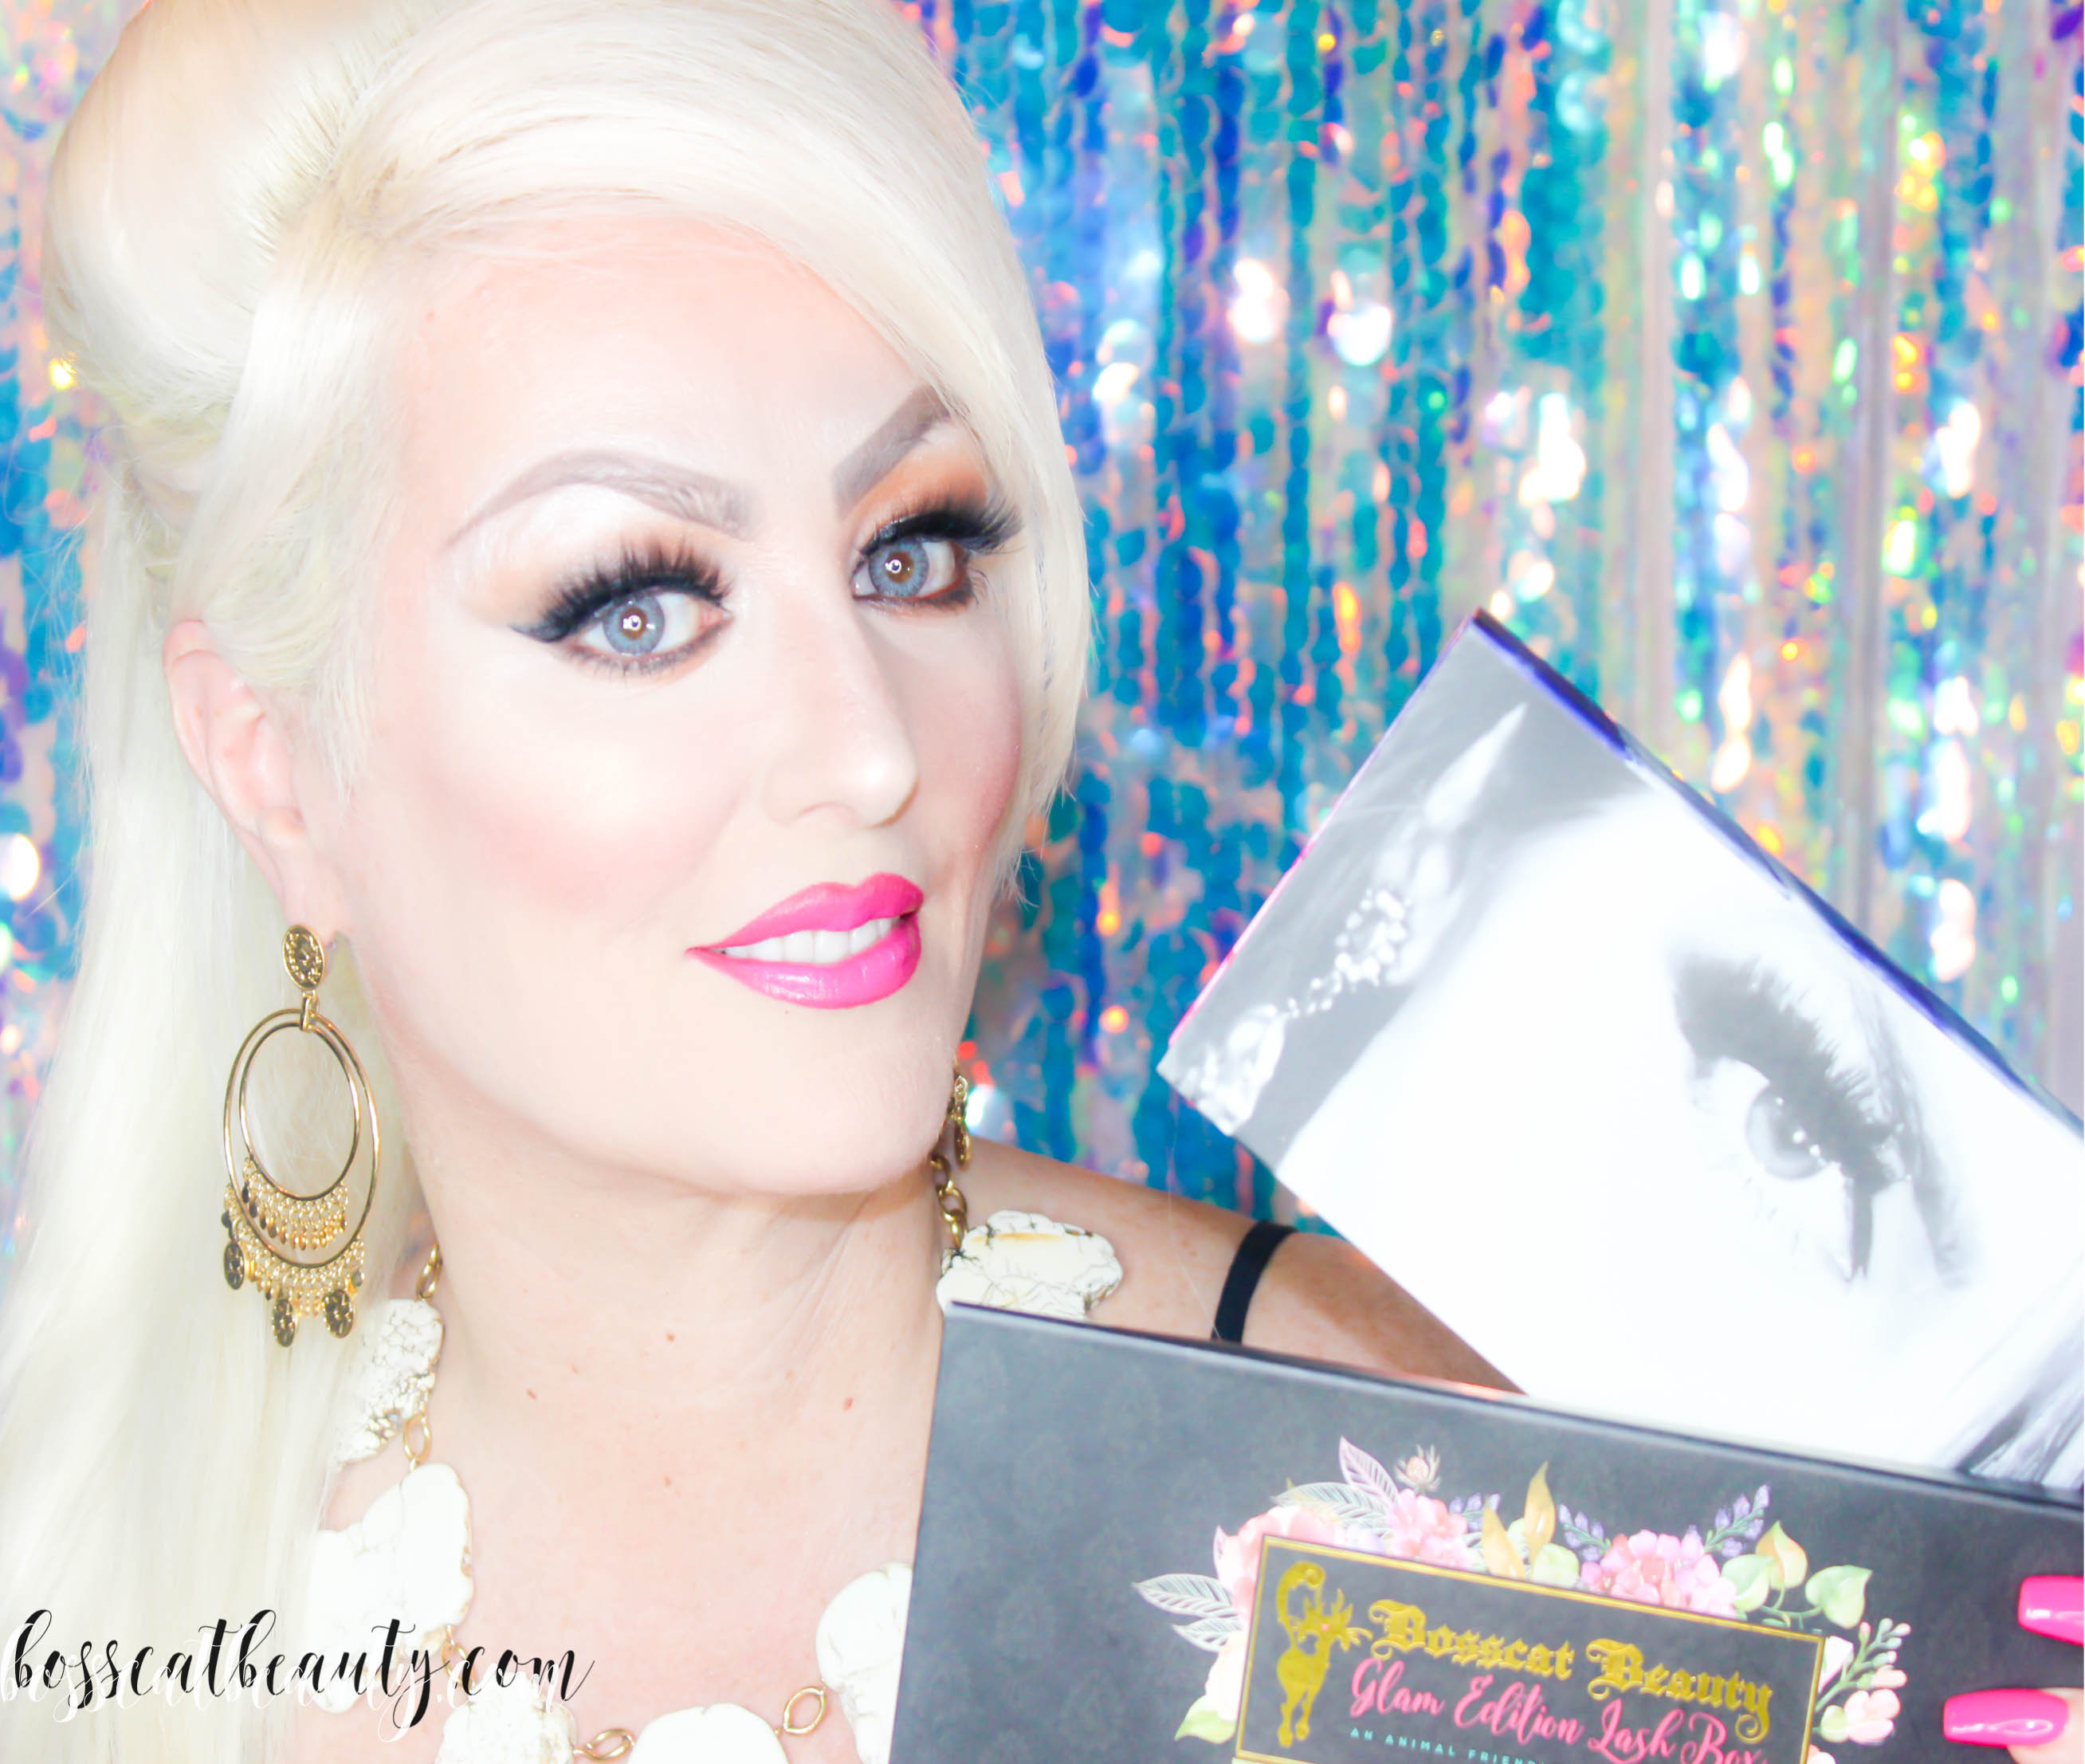 Bosscat Beauty, Luxor Living and Style, Glam Edition Lash Box, silk lashes, American lashes